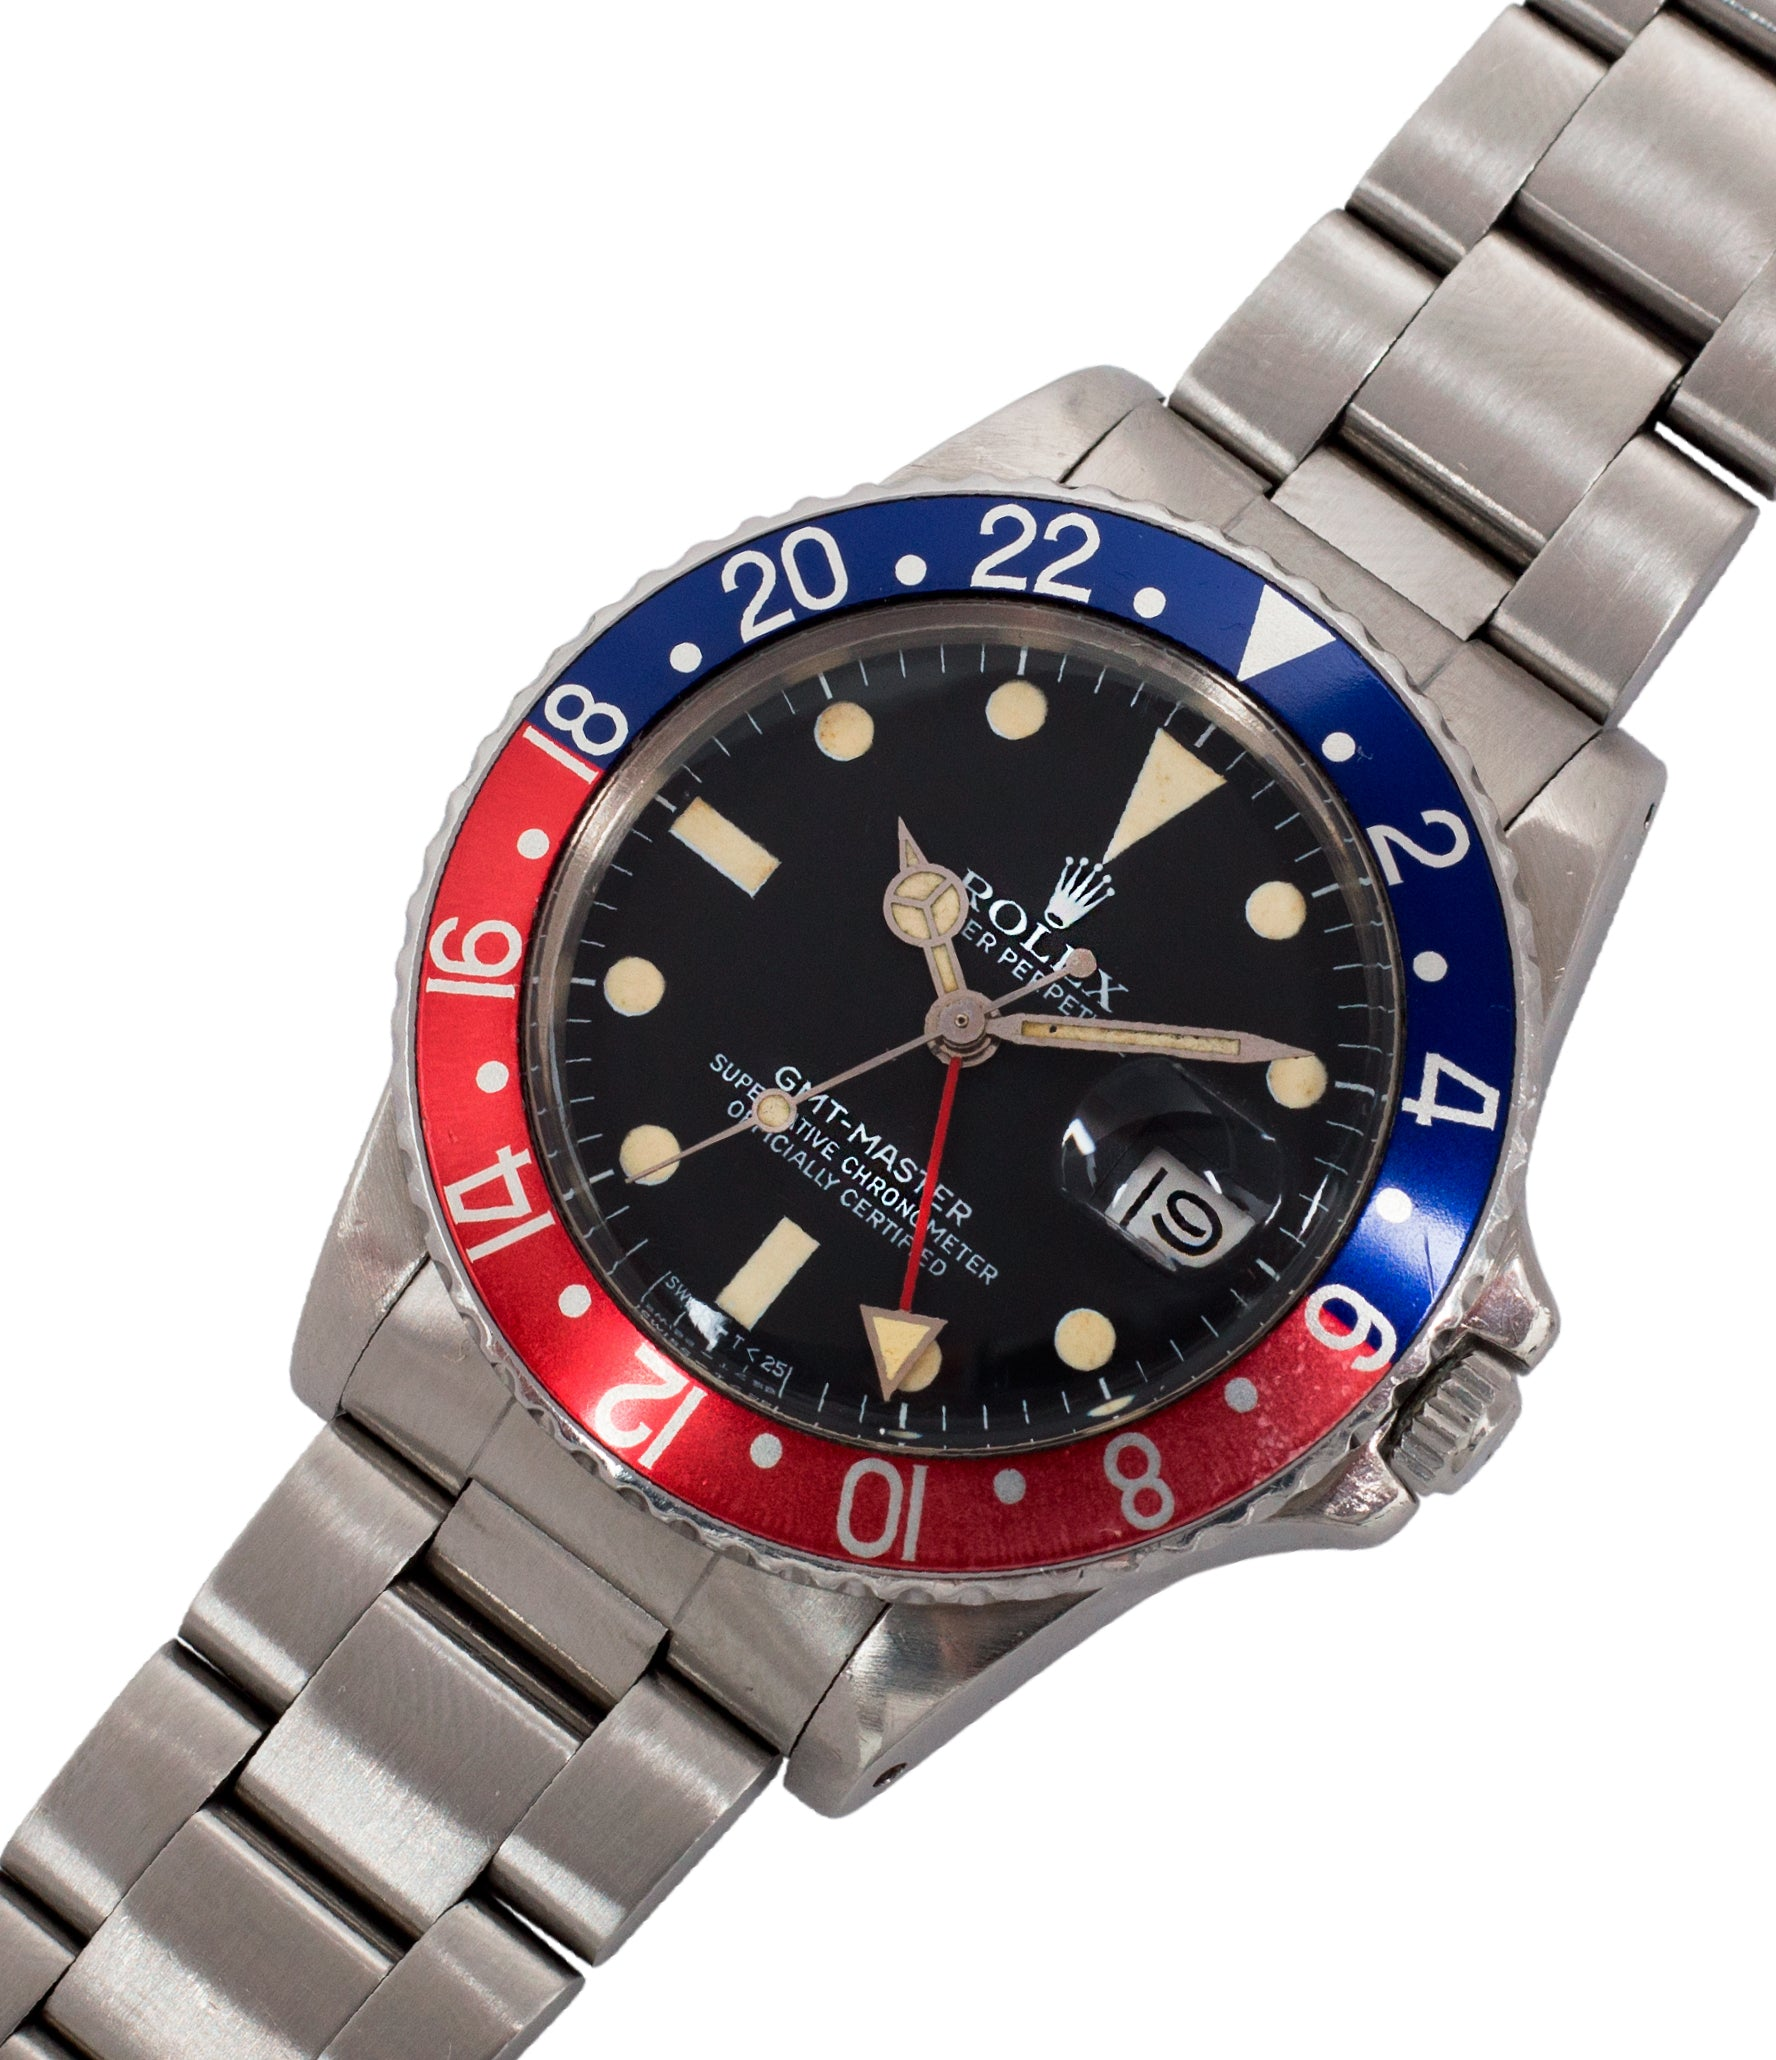 steel Rolex 16750 GMT-Master Pepsi bezel steel sport traveller watch for sale online at A Collected Man London vintage watch specialist